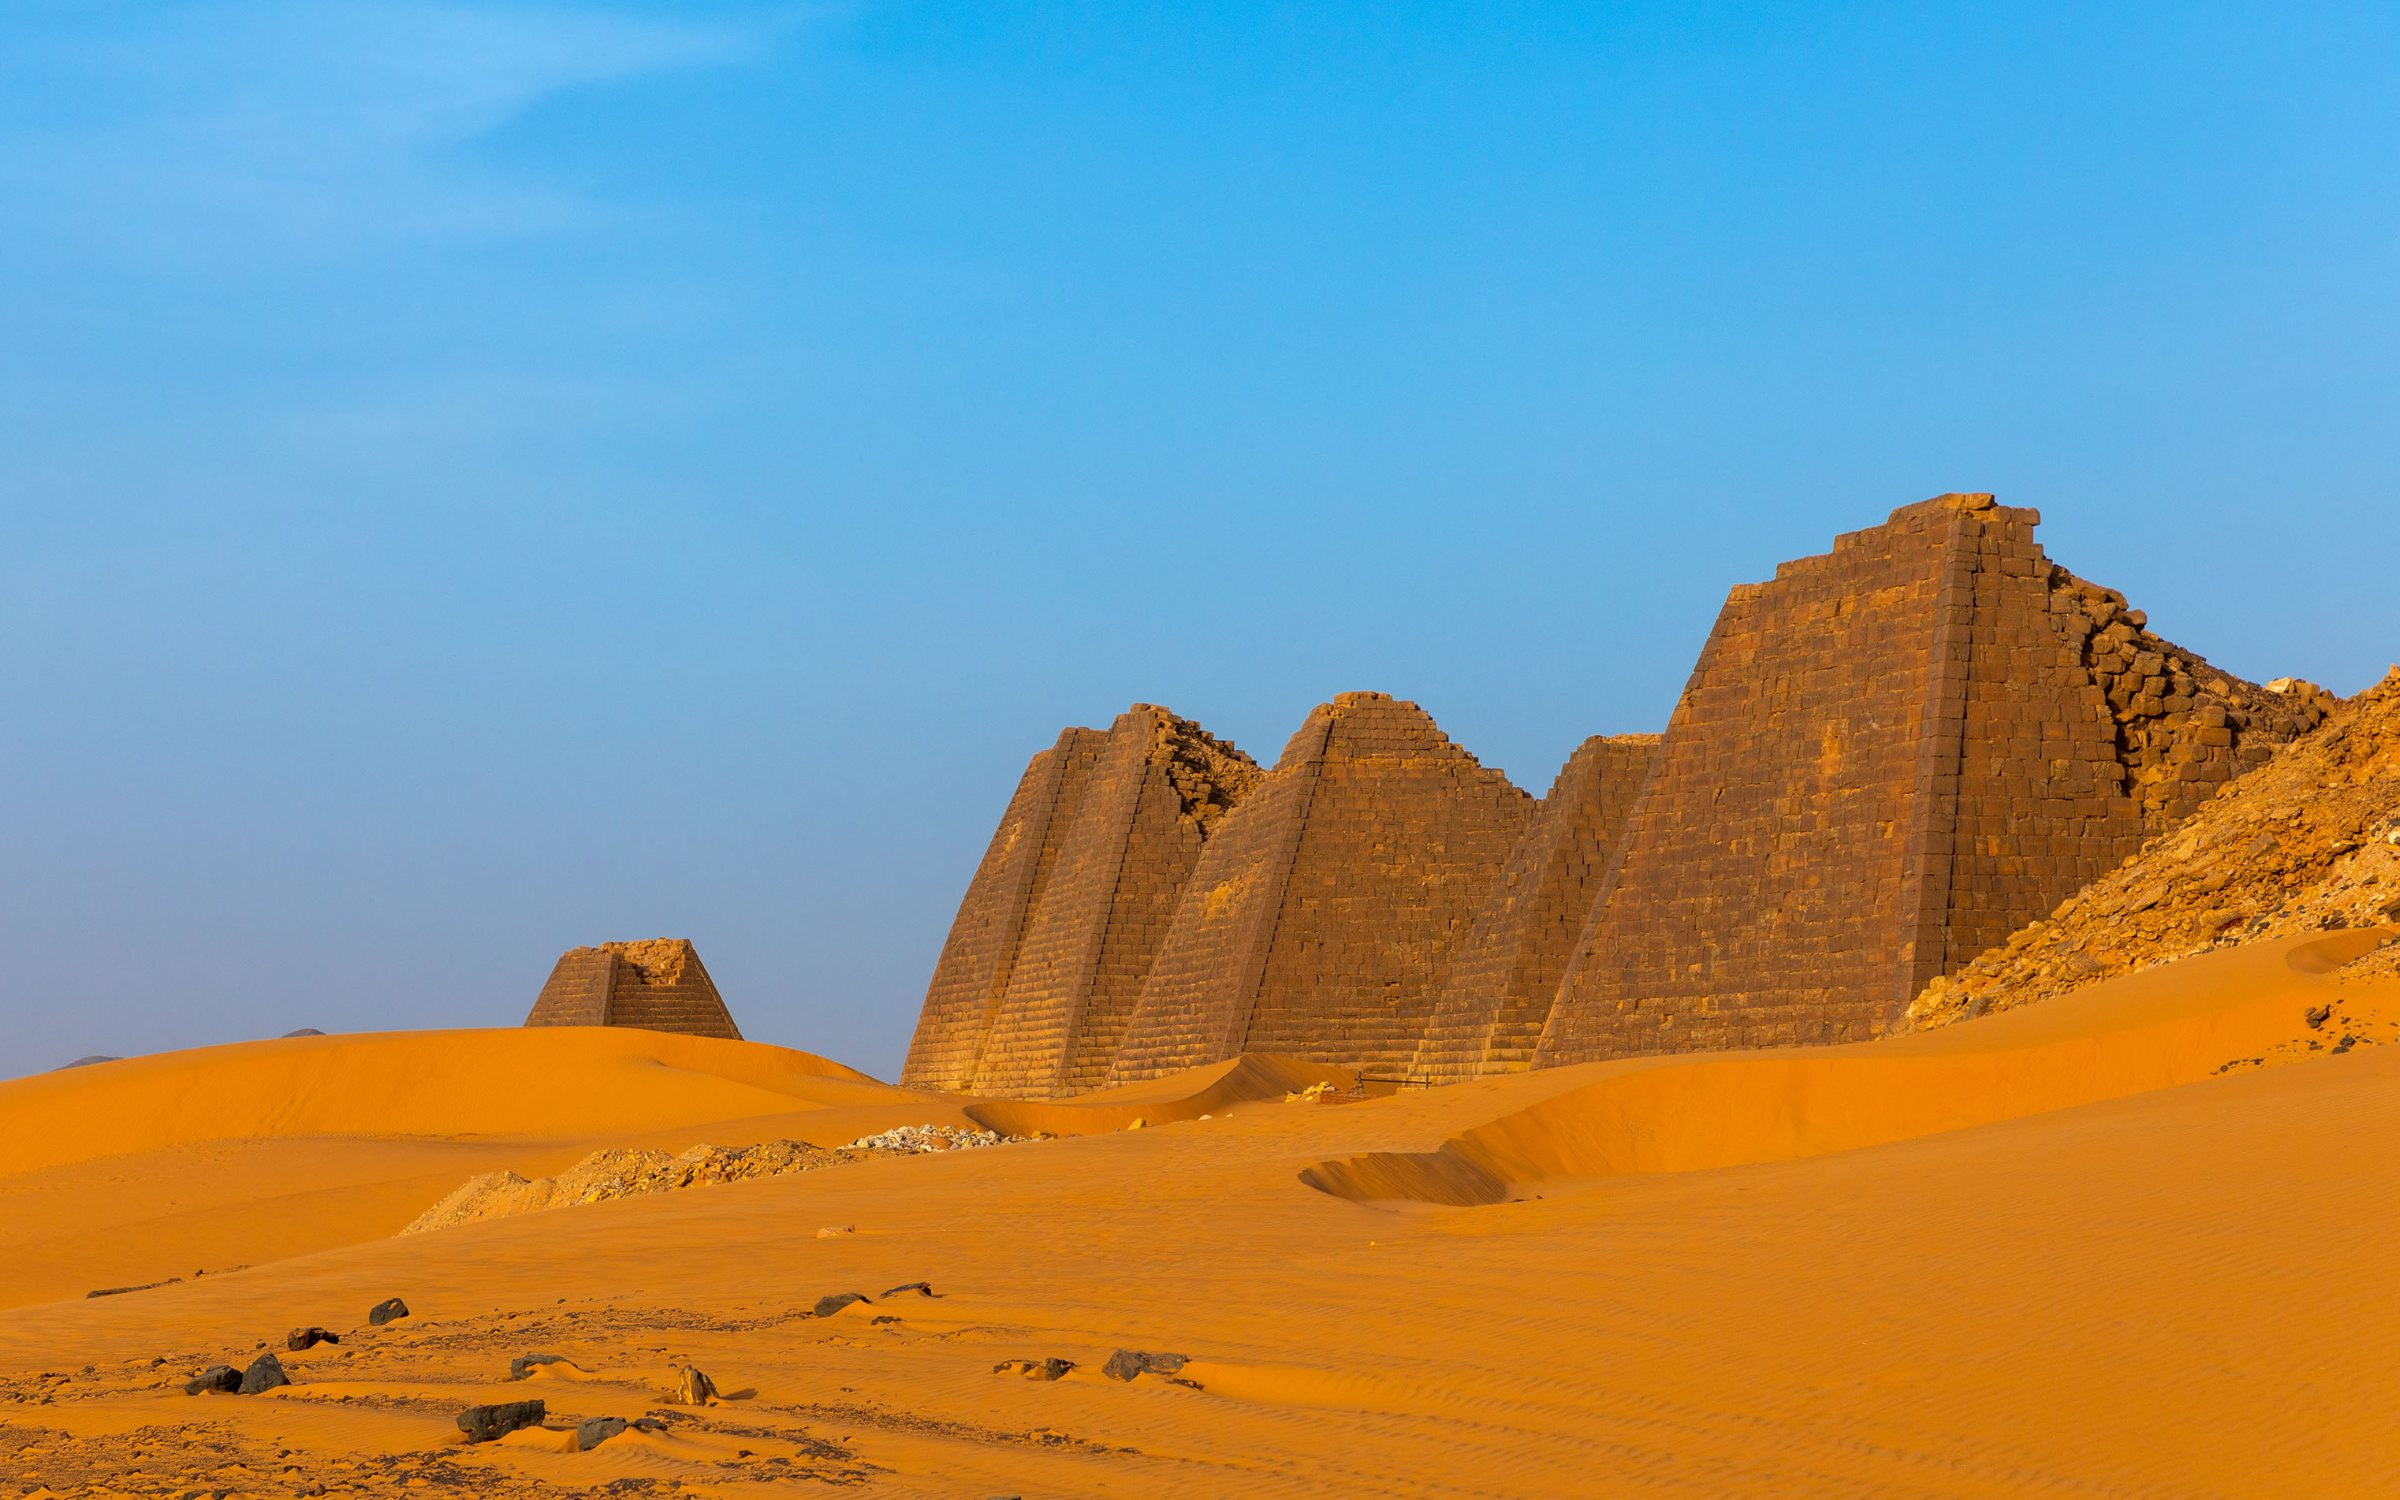 Pyramids of the ancient Kushite rulers in Sudan. Credit: Eric Lafforgue / Art in All of Us/ Corbis via Getty Images.